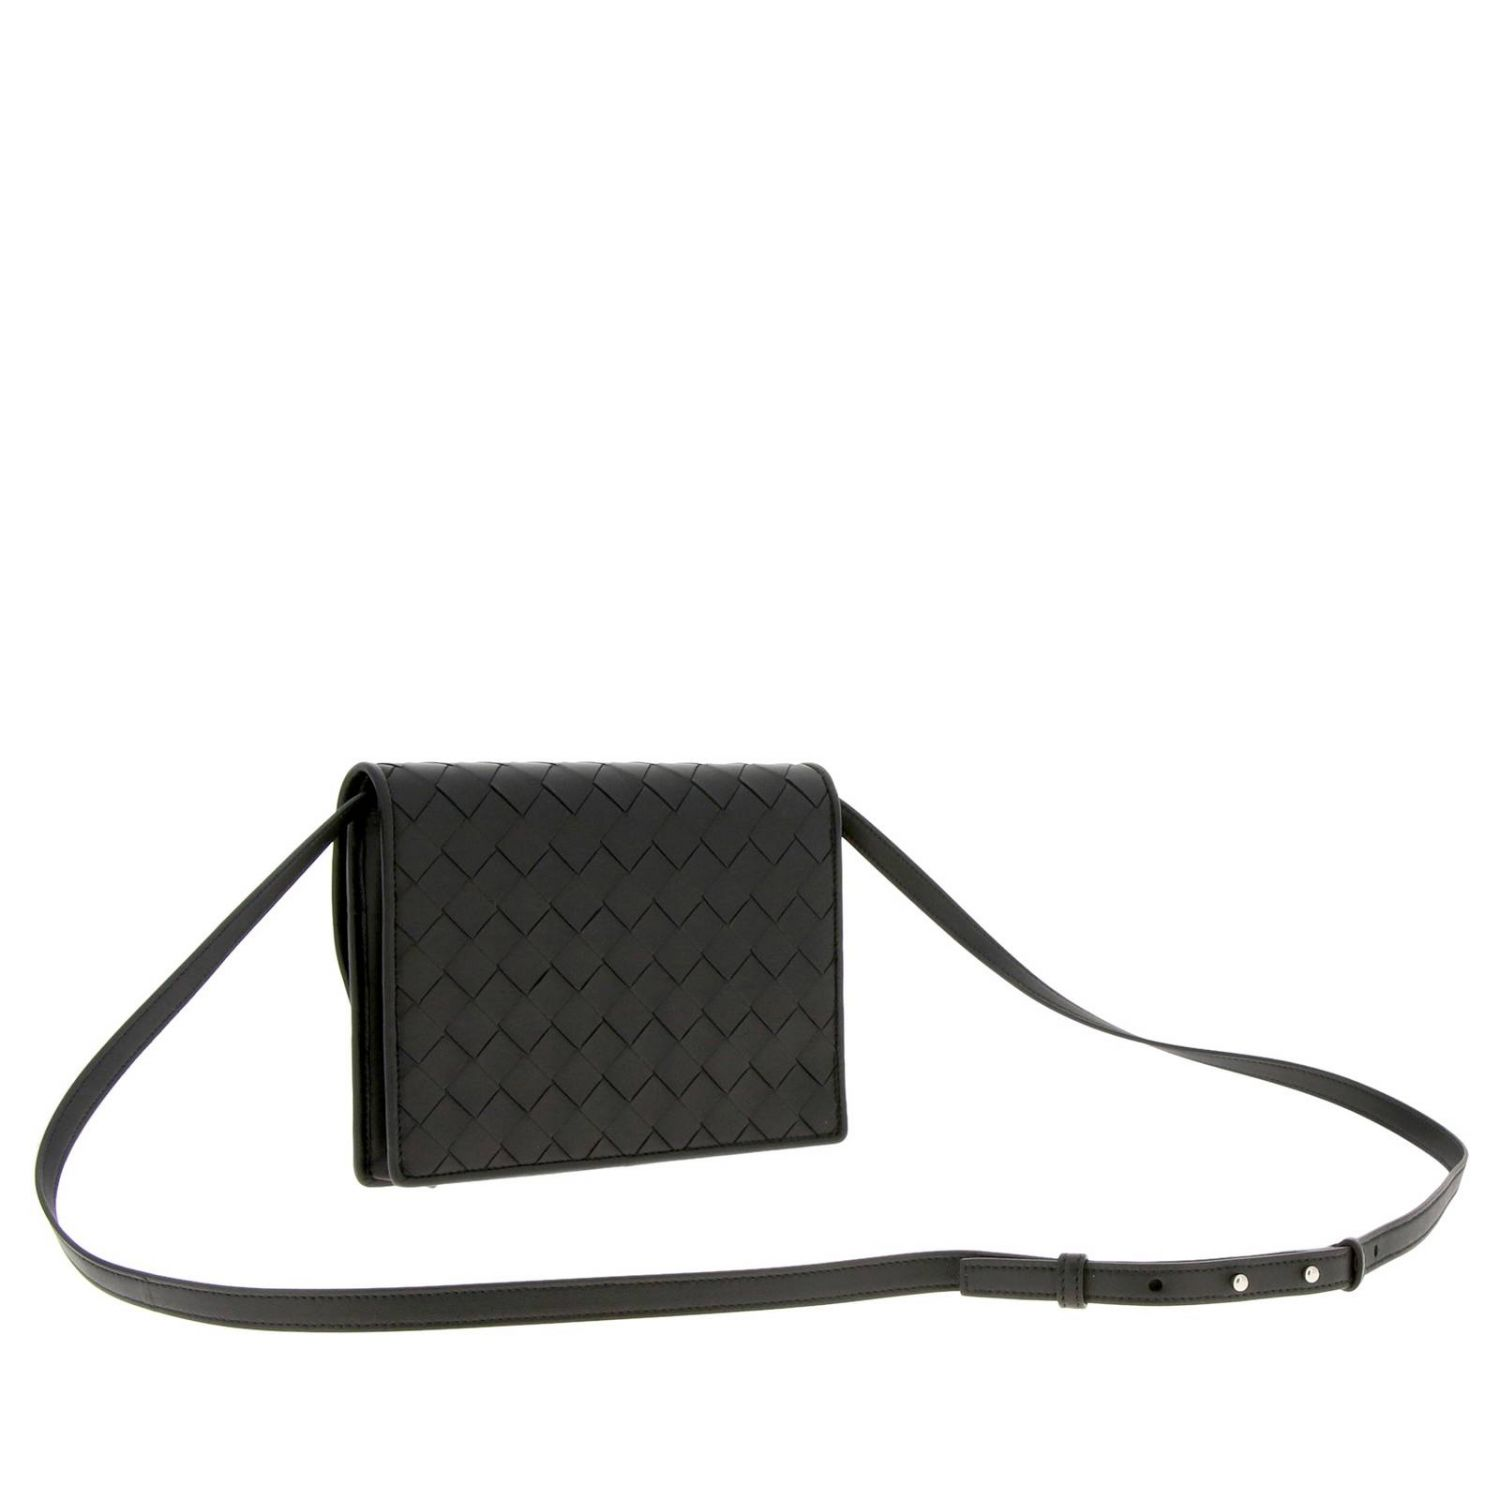 Bottega Veneta shoulder bag in leather with maxi weave black 3